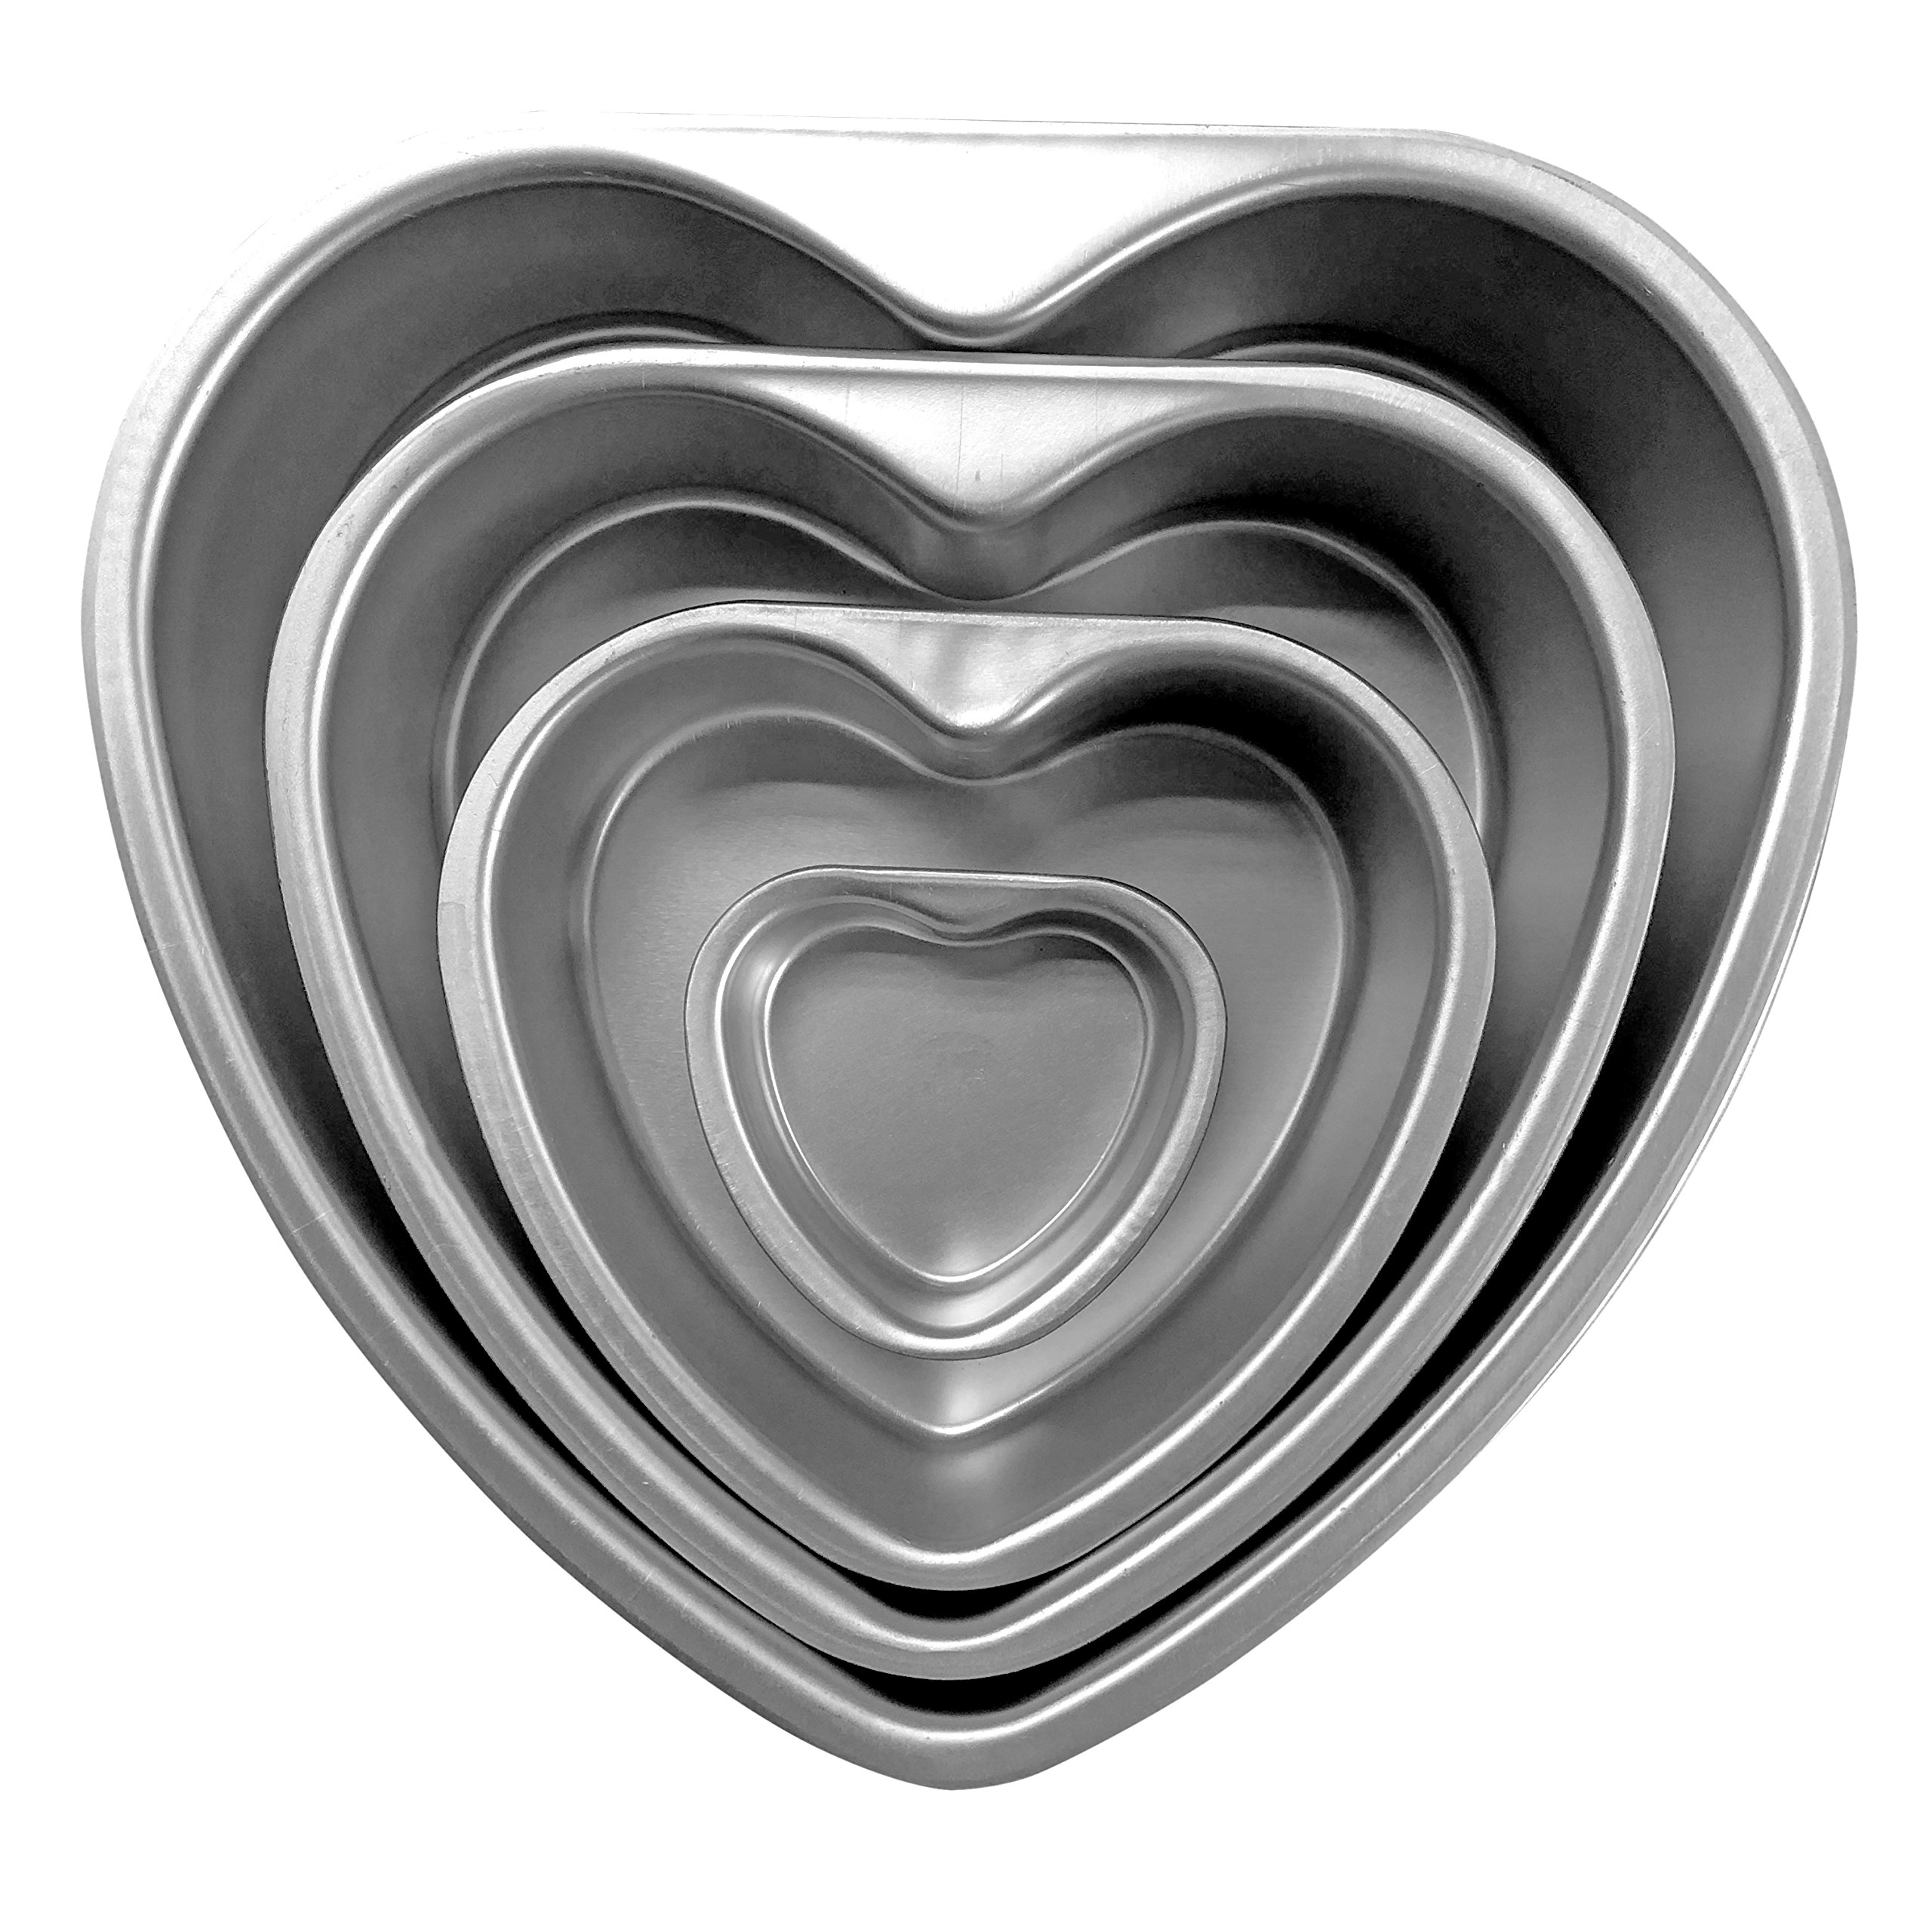 Cherion 4PC Aluminium Heart Shaped Cake Pan Set with Removable Bottom for Valentine's Day - 5'' 6'' 8'' 10'' by Cherion (Image #2)